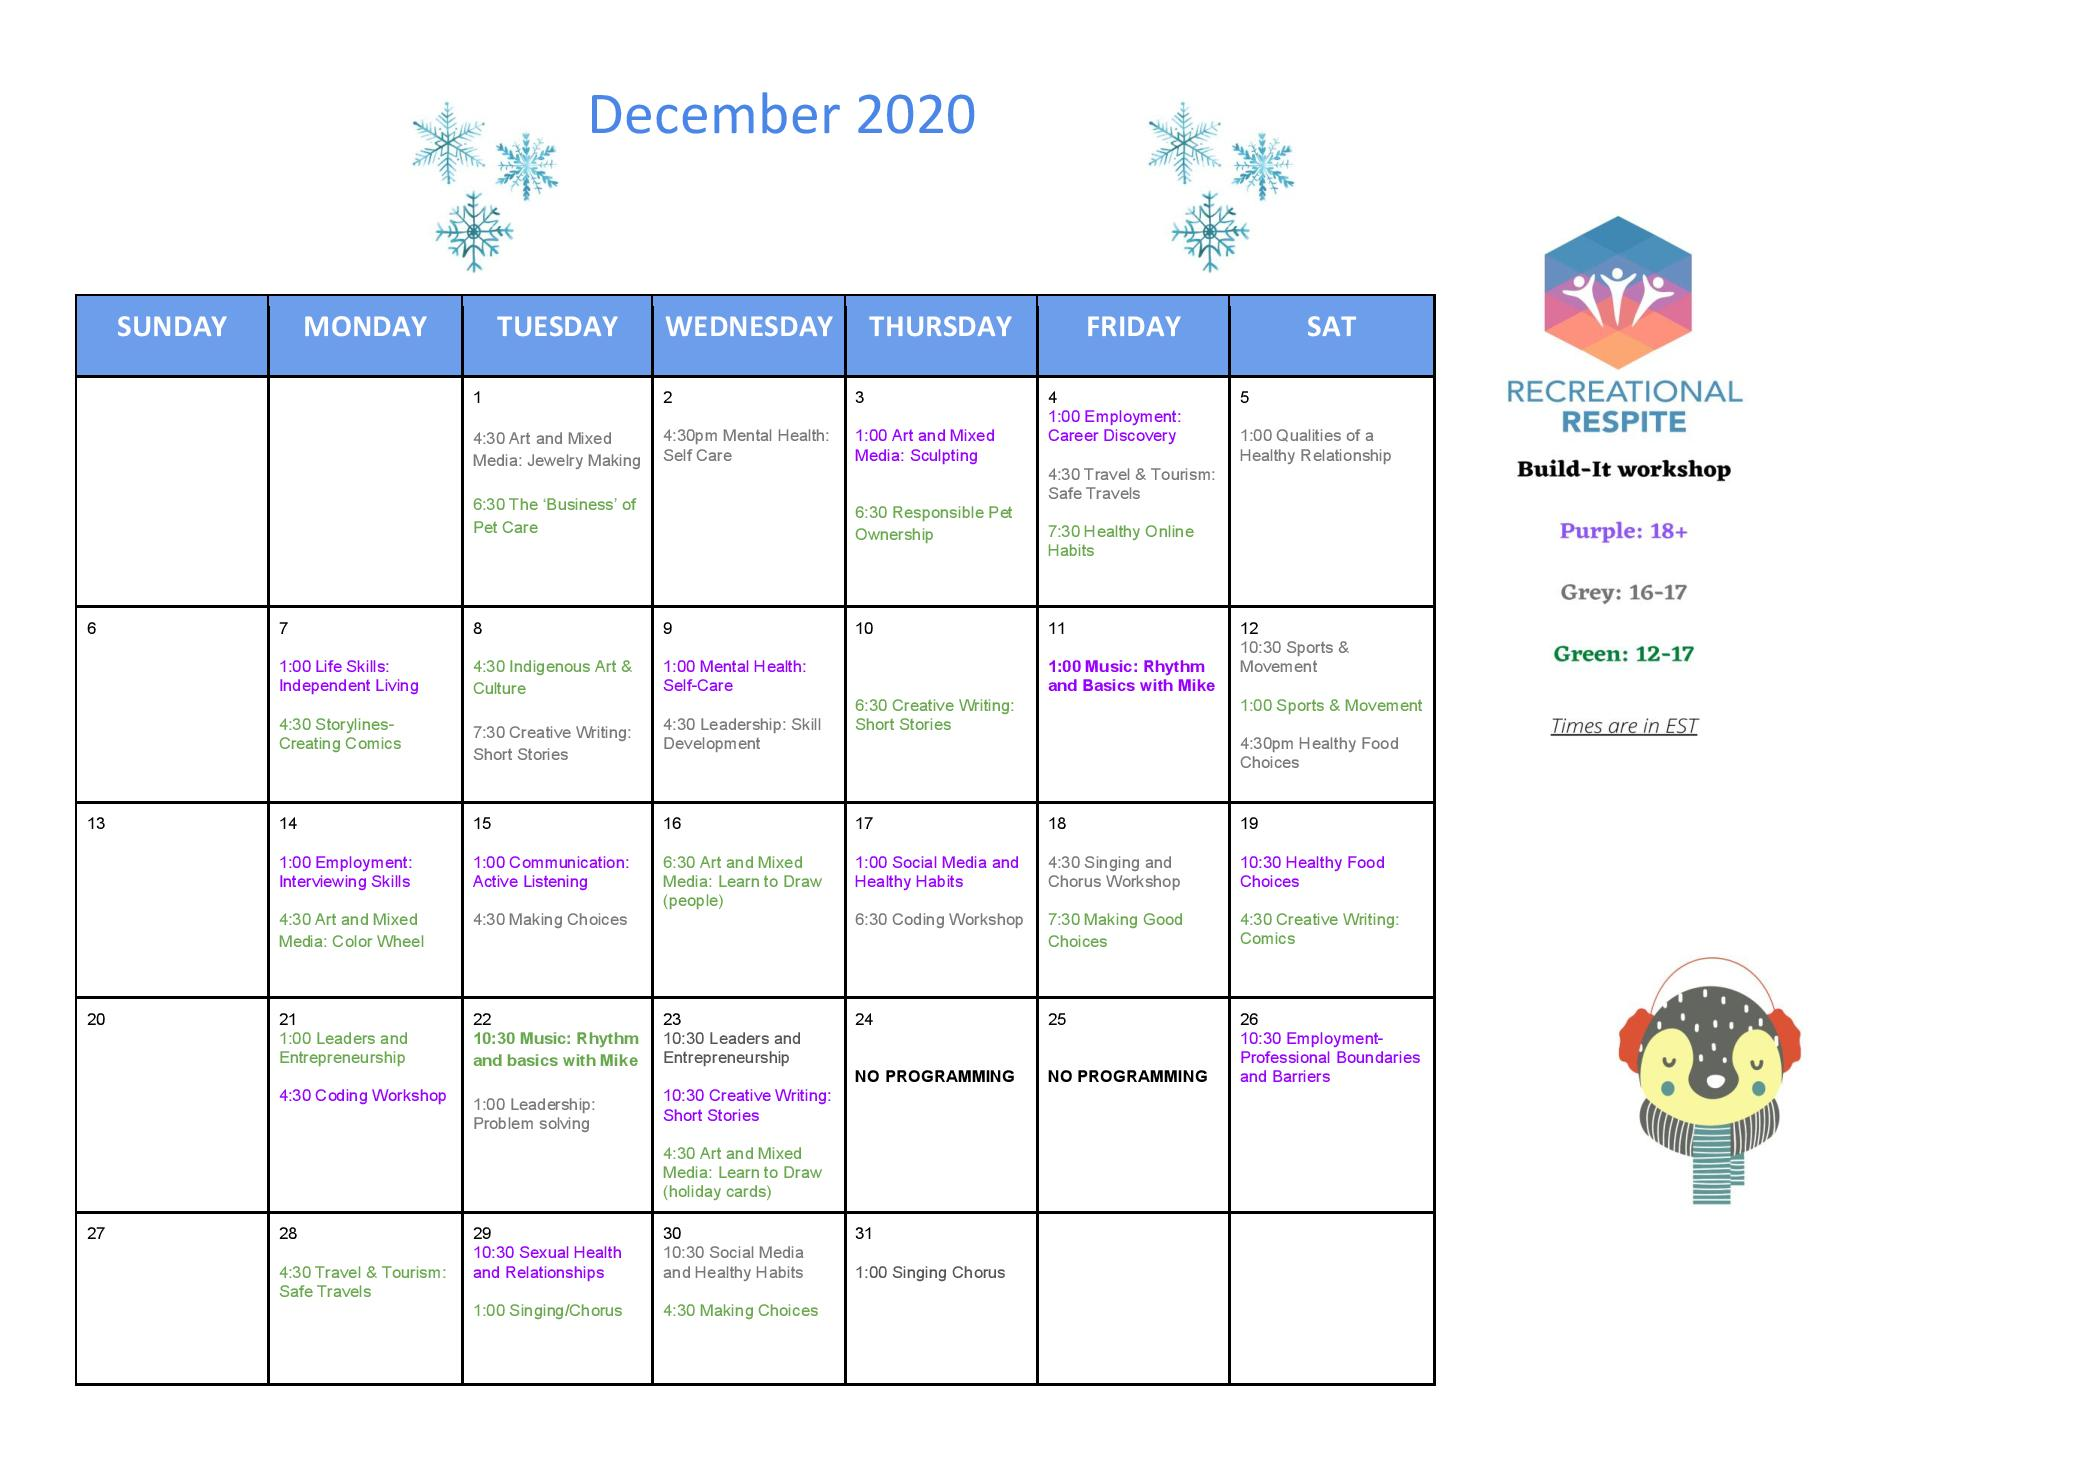 Calendar of December virtual activity events, available online